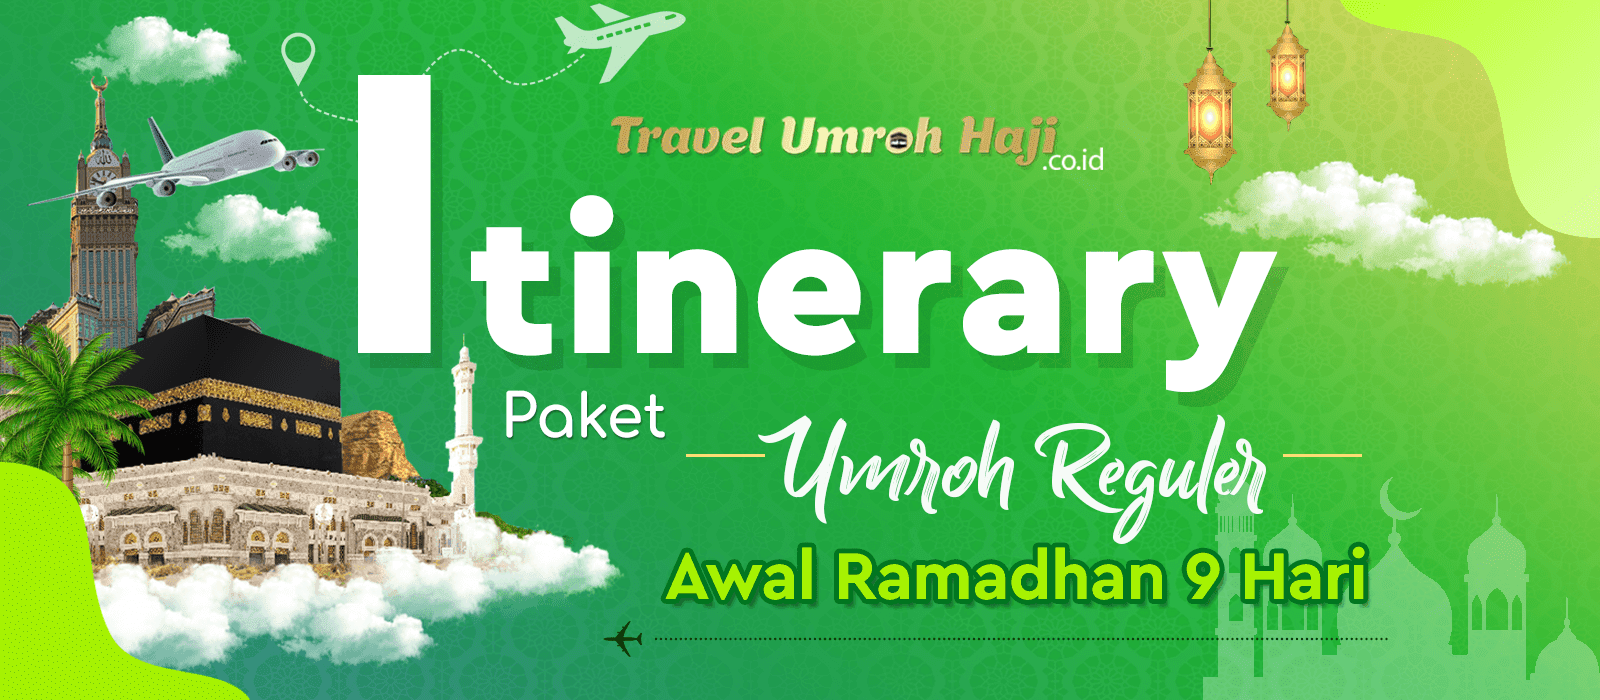 Program Itinerary Umroh 9 Hari Awal Ramadhan Direct